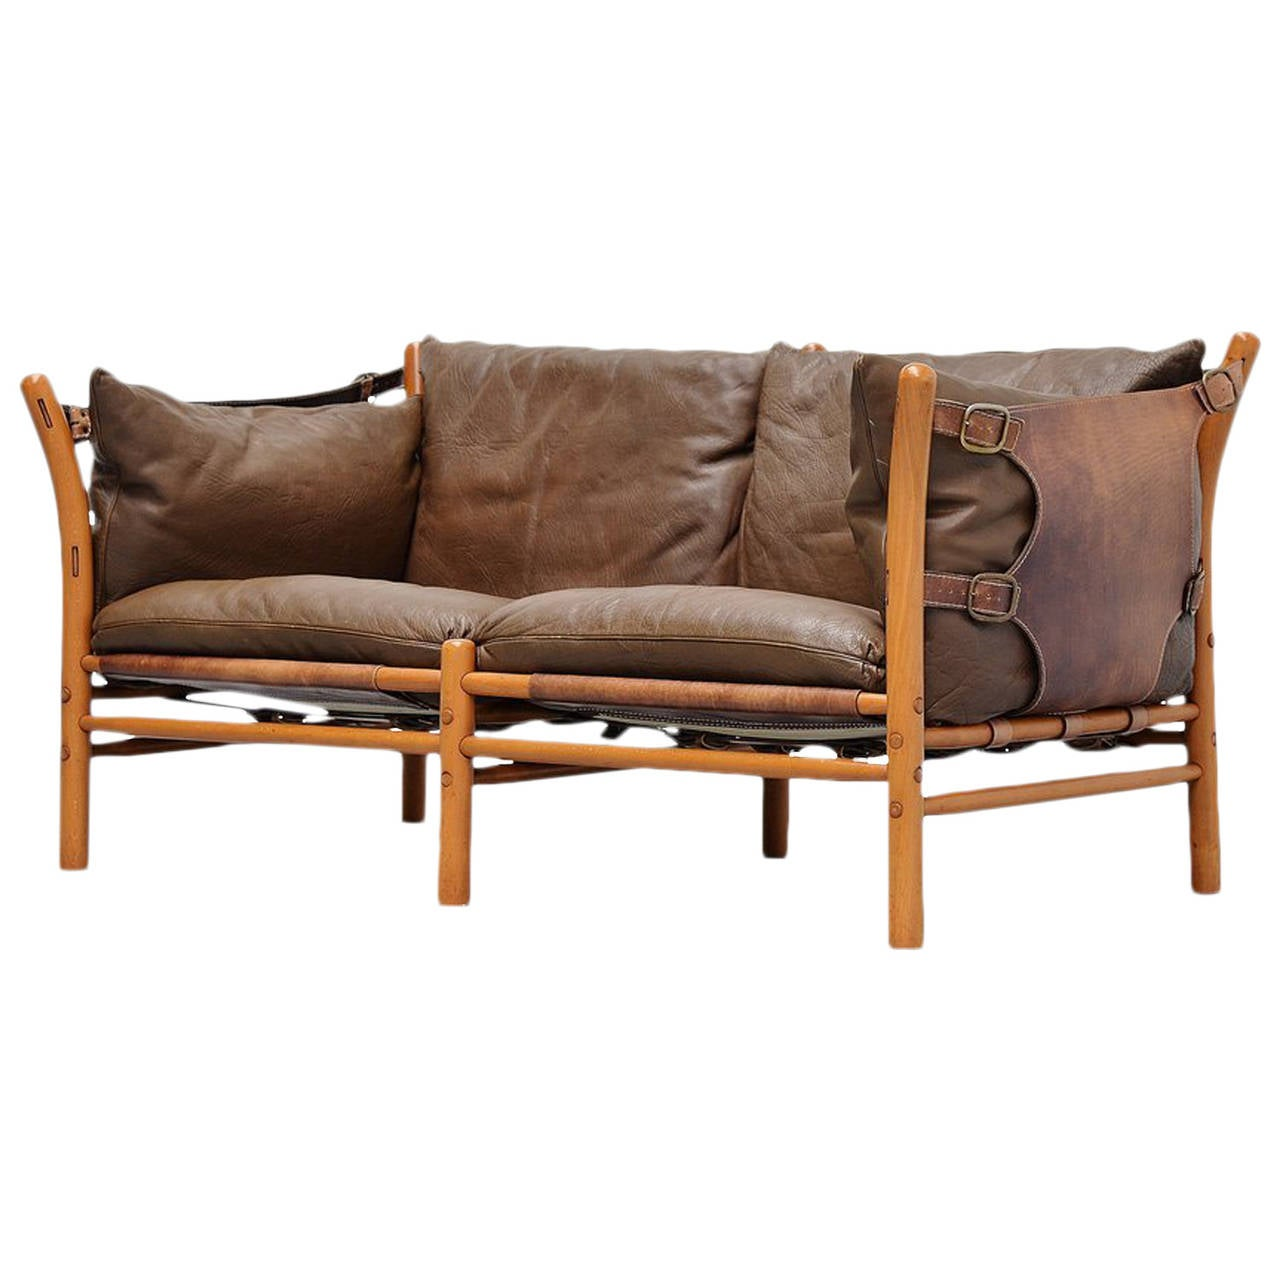 Arne norell ilona two seat sofa sweden 1960 at 1stdibs for Schwedensofa